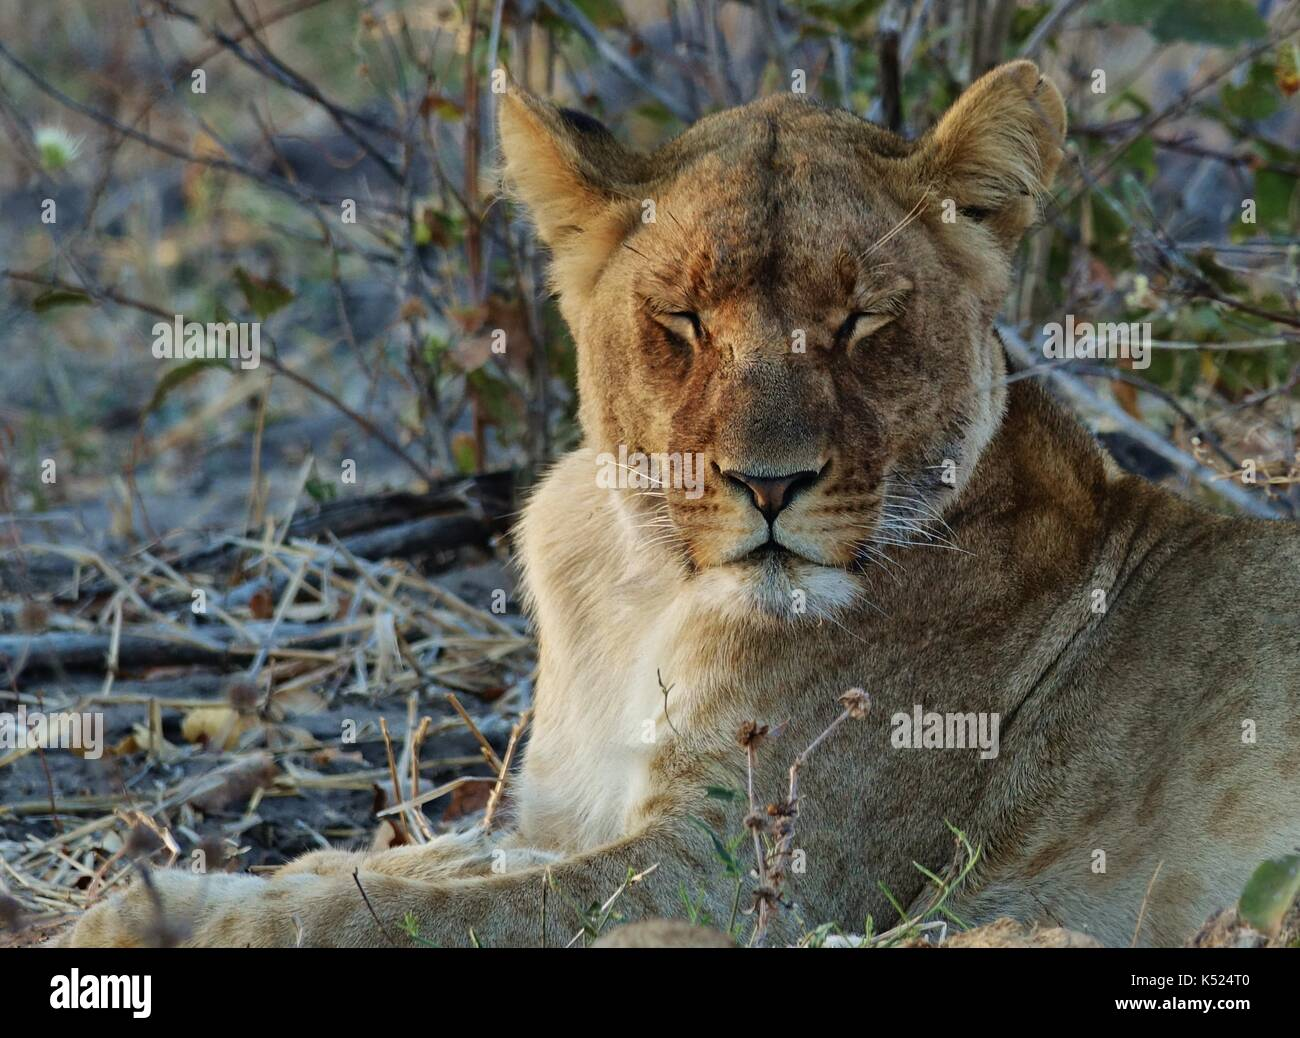 Lioness sleeping - Stock Image